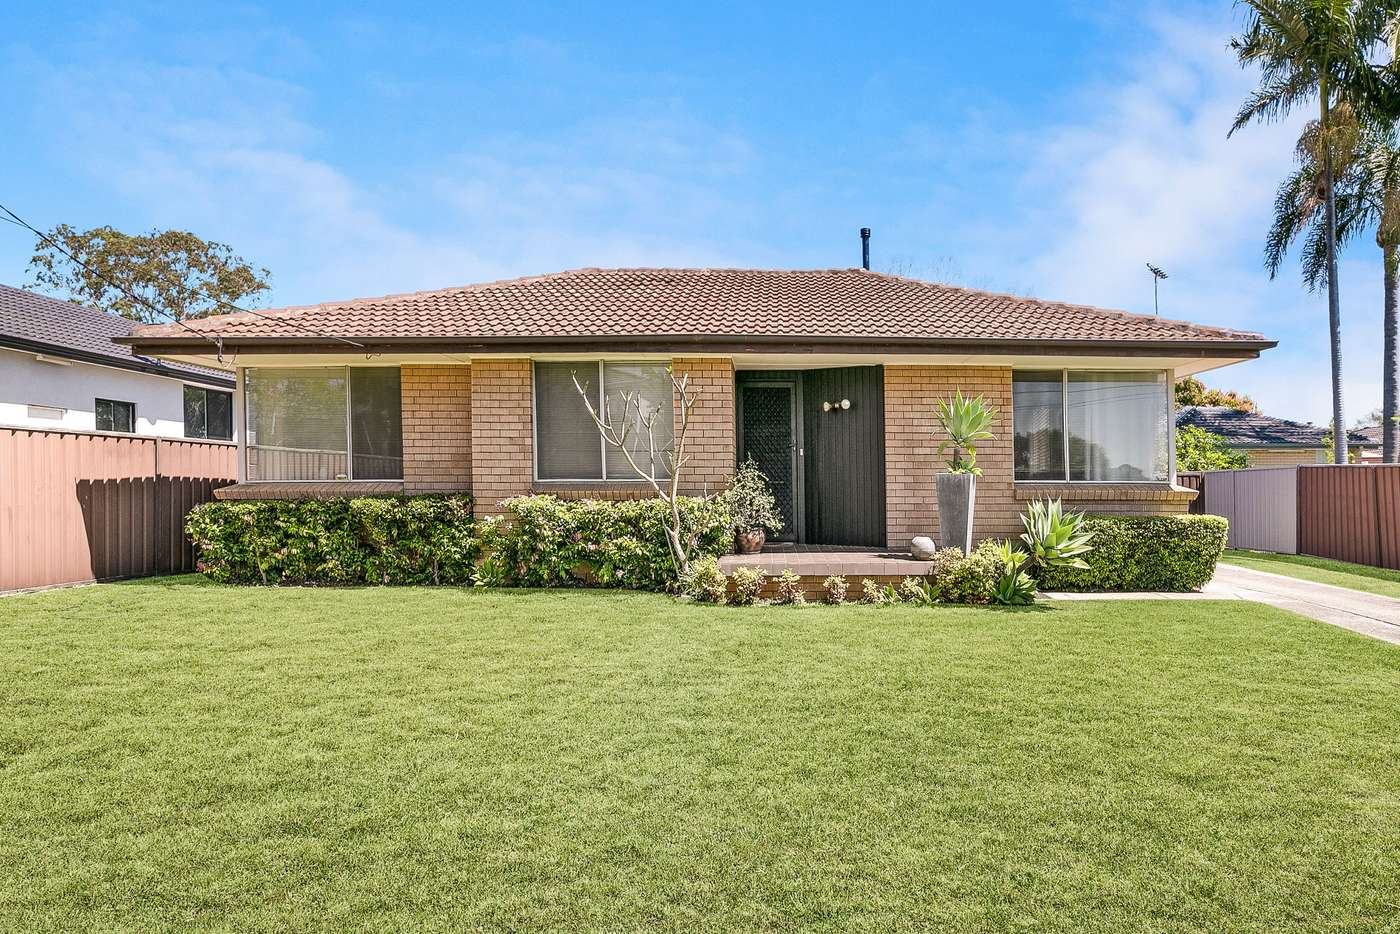 Main view of Homely house listing, 2 Handle Street, Bass Hill NSW 2197